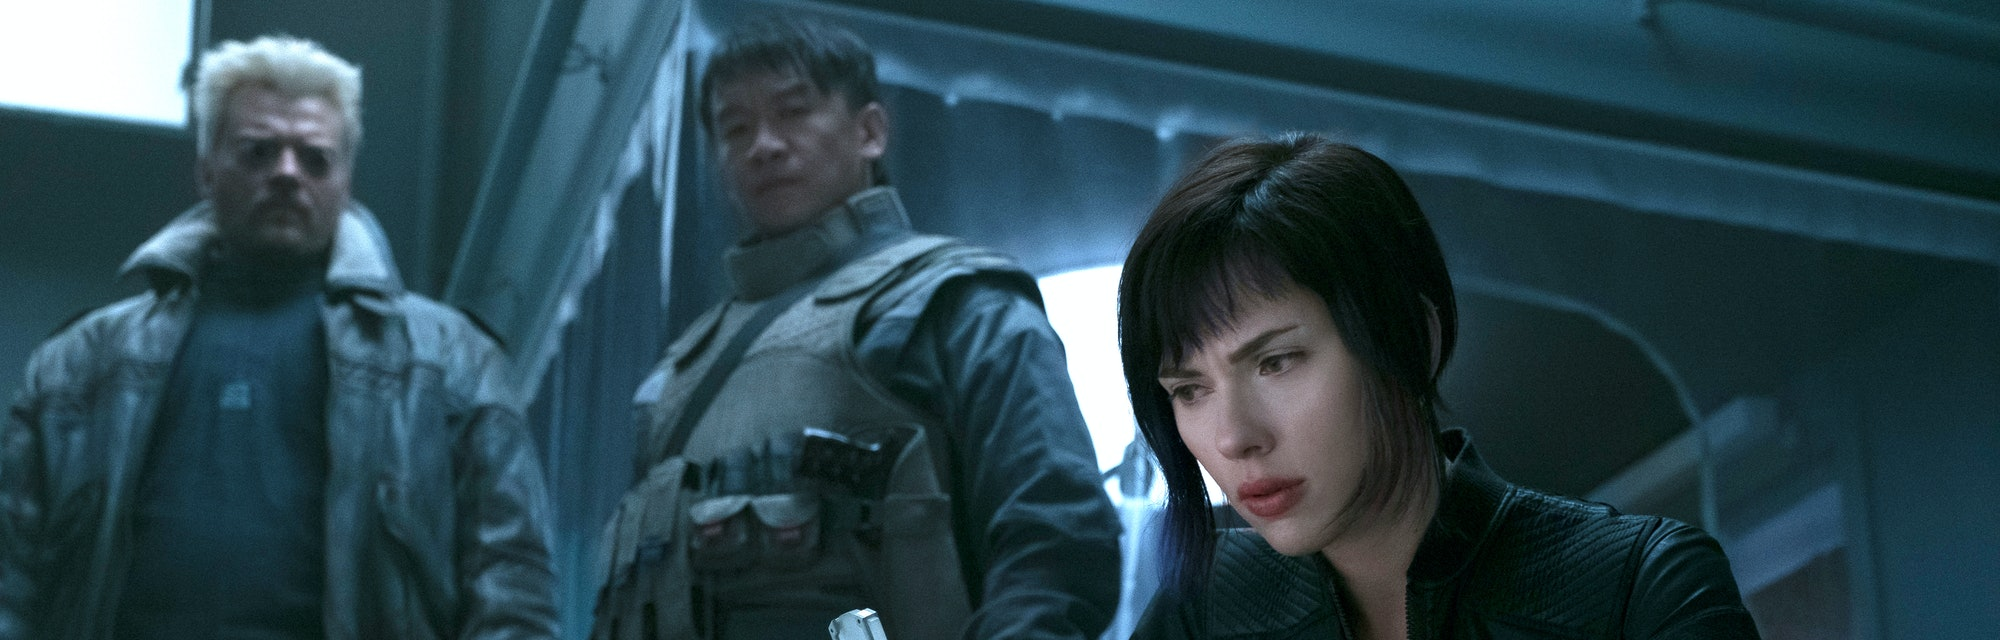 Don T Rule Out A Sequel Ghost In The Shell 2 Could Happen